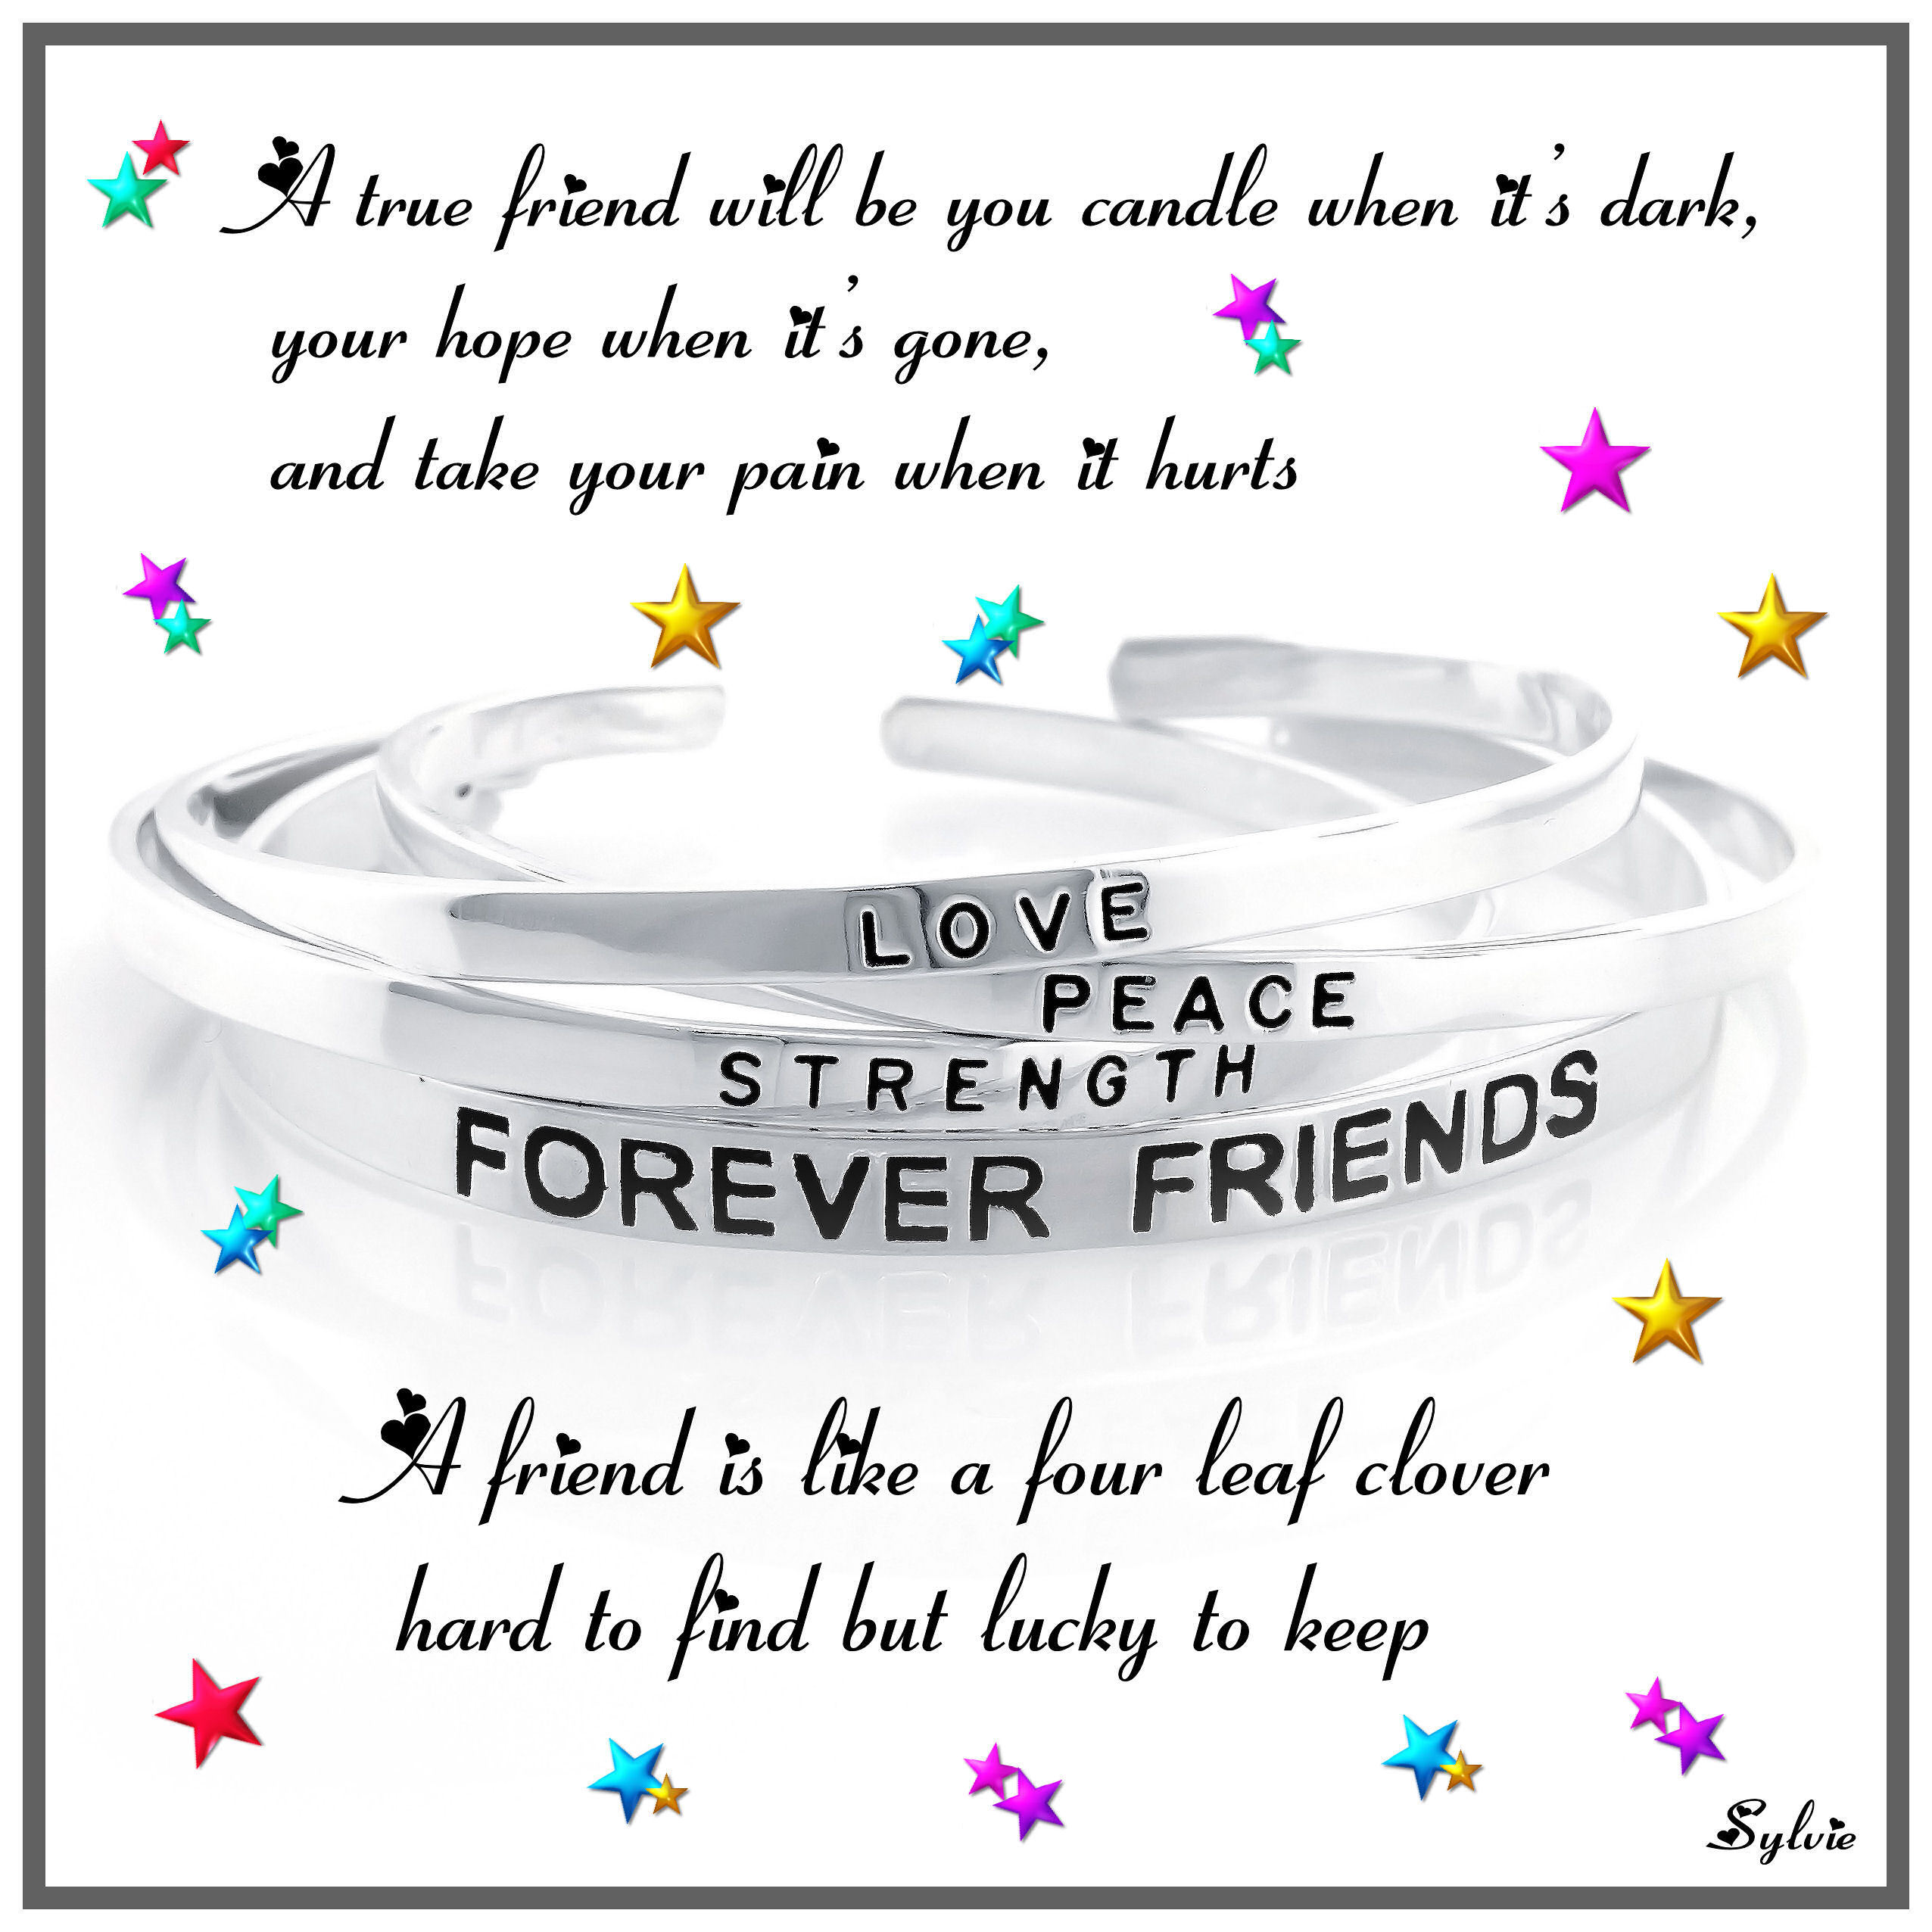 Best Quotes For Friends Birthday : Best friends birthday quotes for girls quotesgram